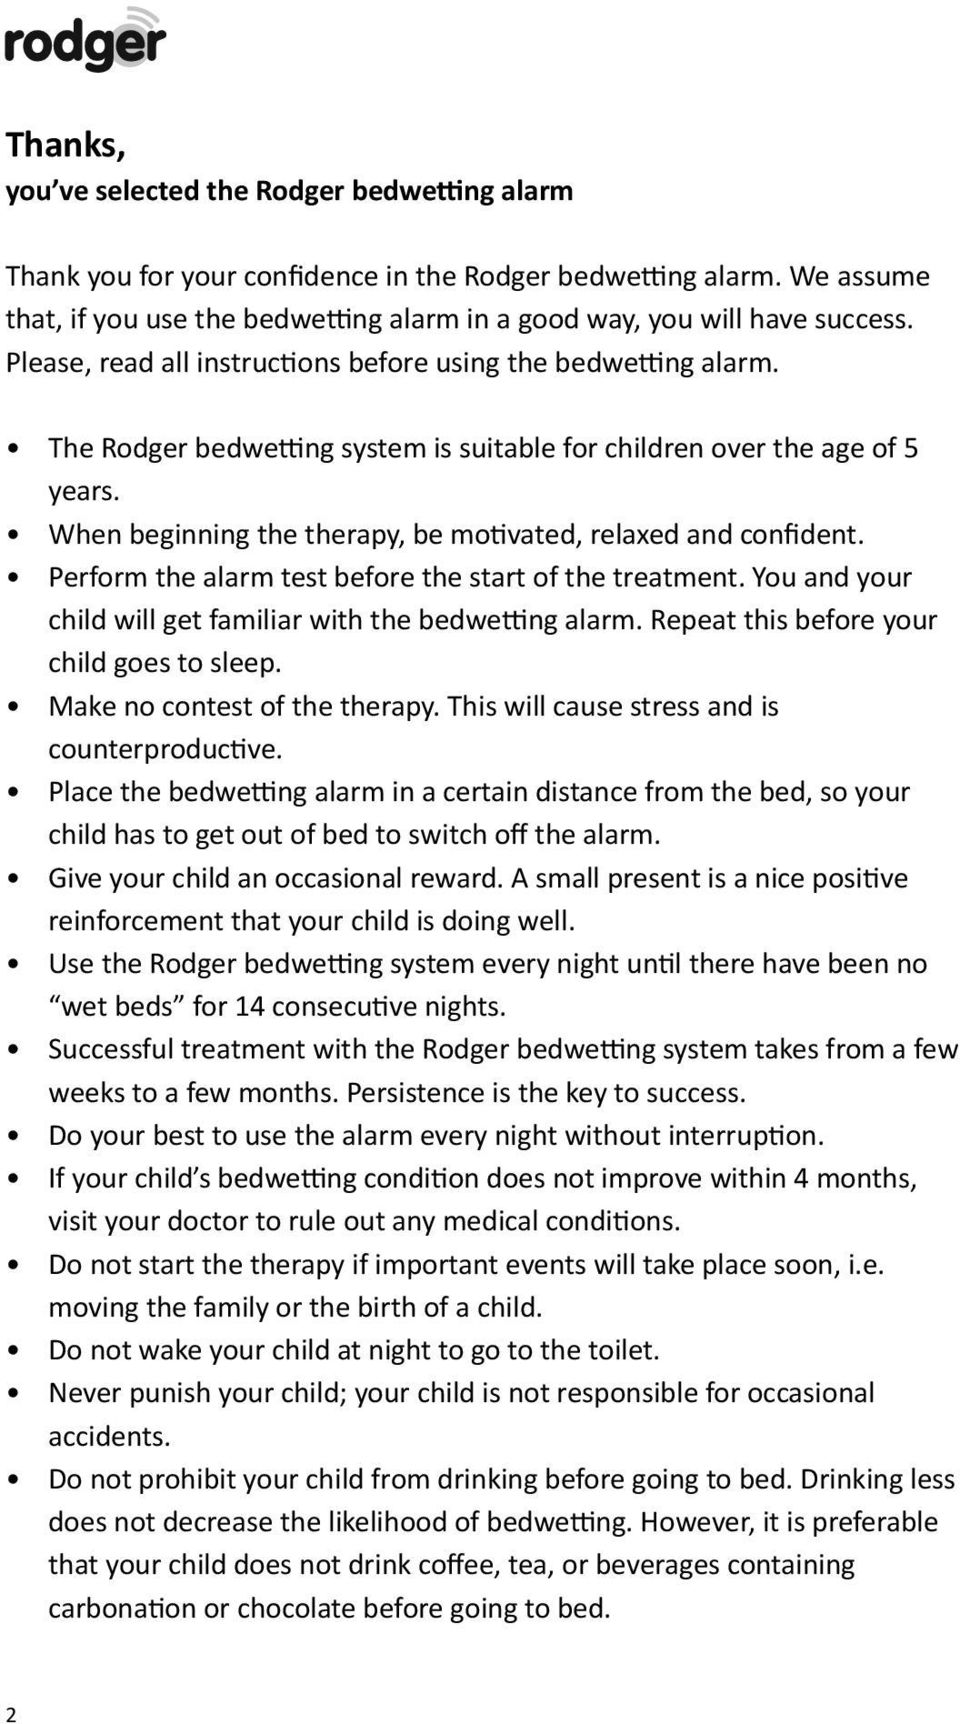 When beginning the therapy, be mo vated, relaxed and confident. Perform the alarm test before the start of the treatment. You and your child will get familiar with the bedwe ng alarm.